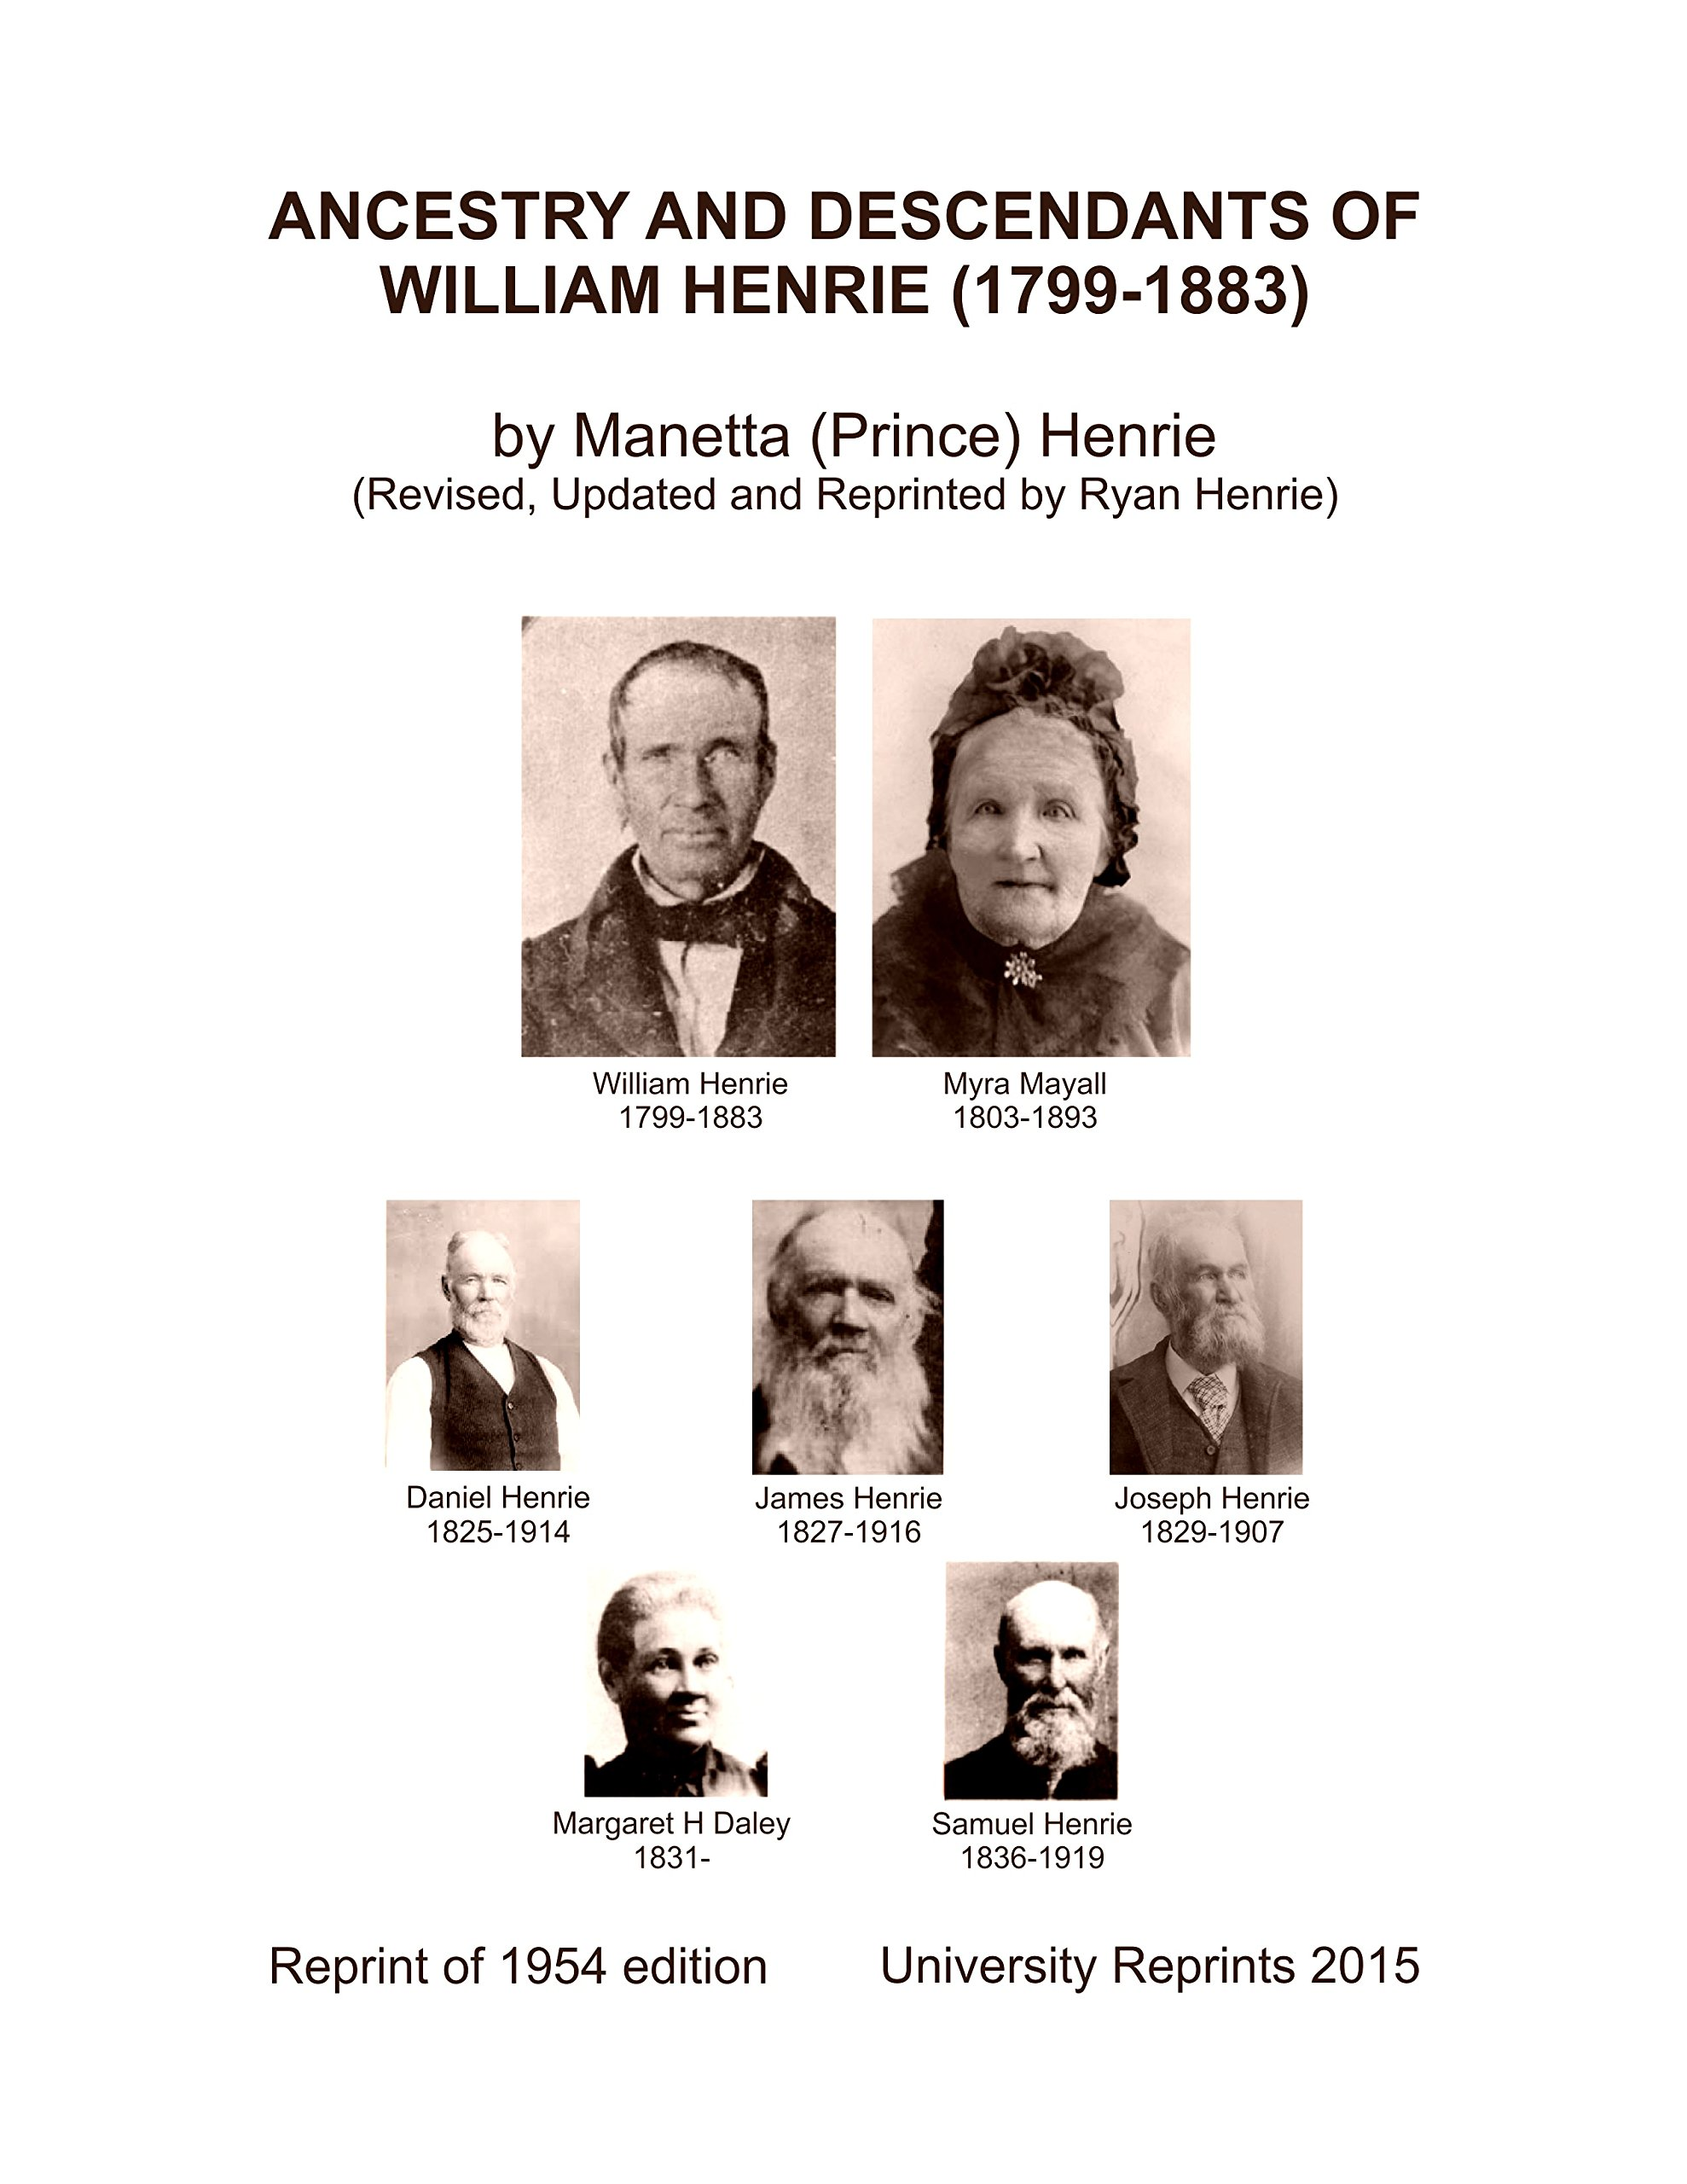 Download ANCESTRY AND DESCENDANTS OF WILLIAM HENRIE 1799—1883 by Manetta (Prince) Henrie (Revised, Updated and Reprinted by Ryan Henrie) Reprint of 1954 edition ebook